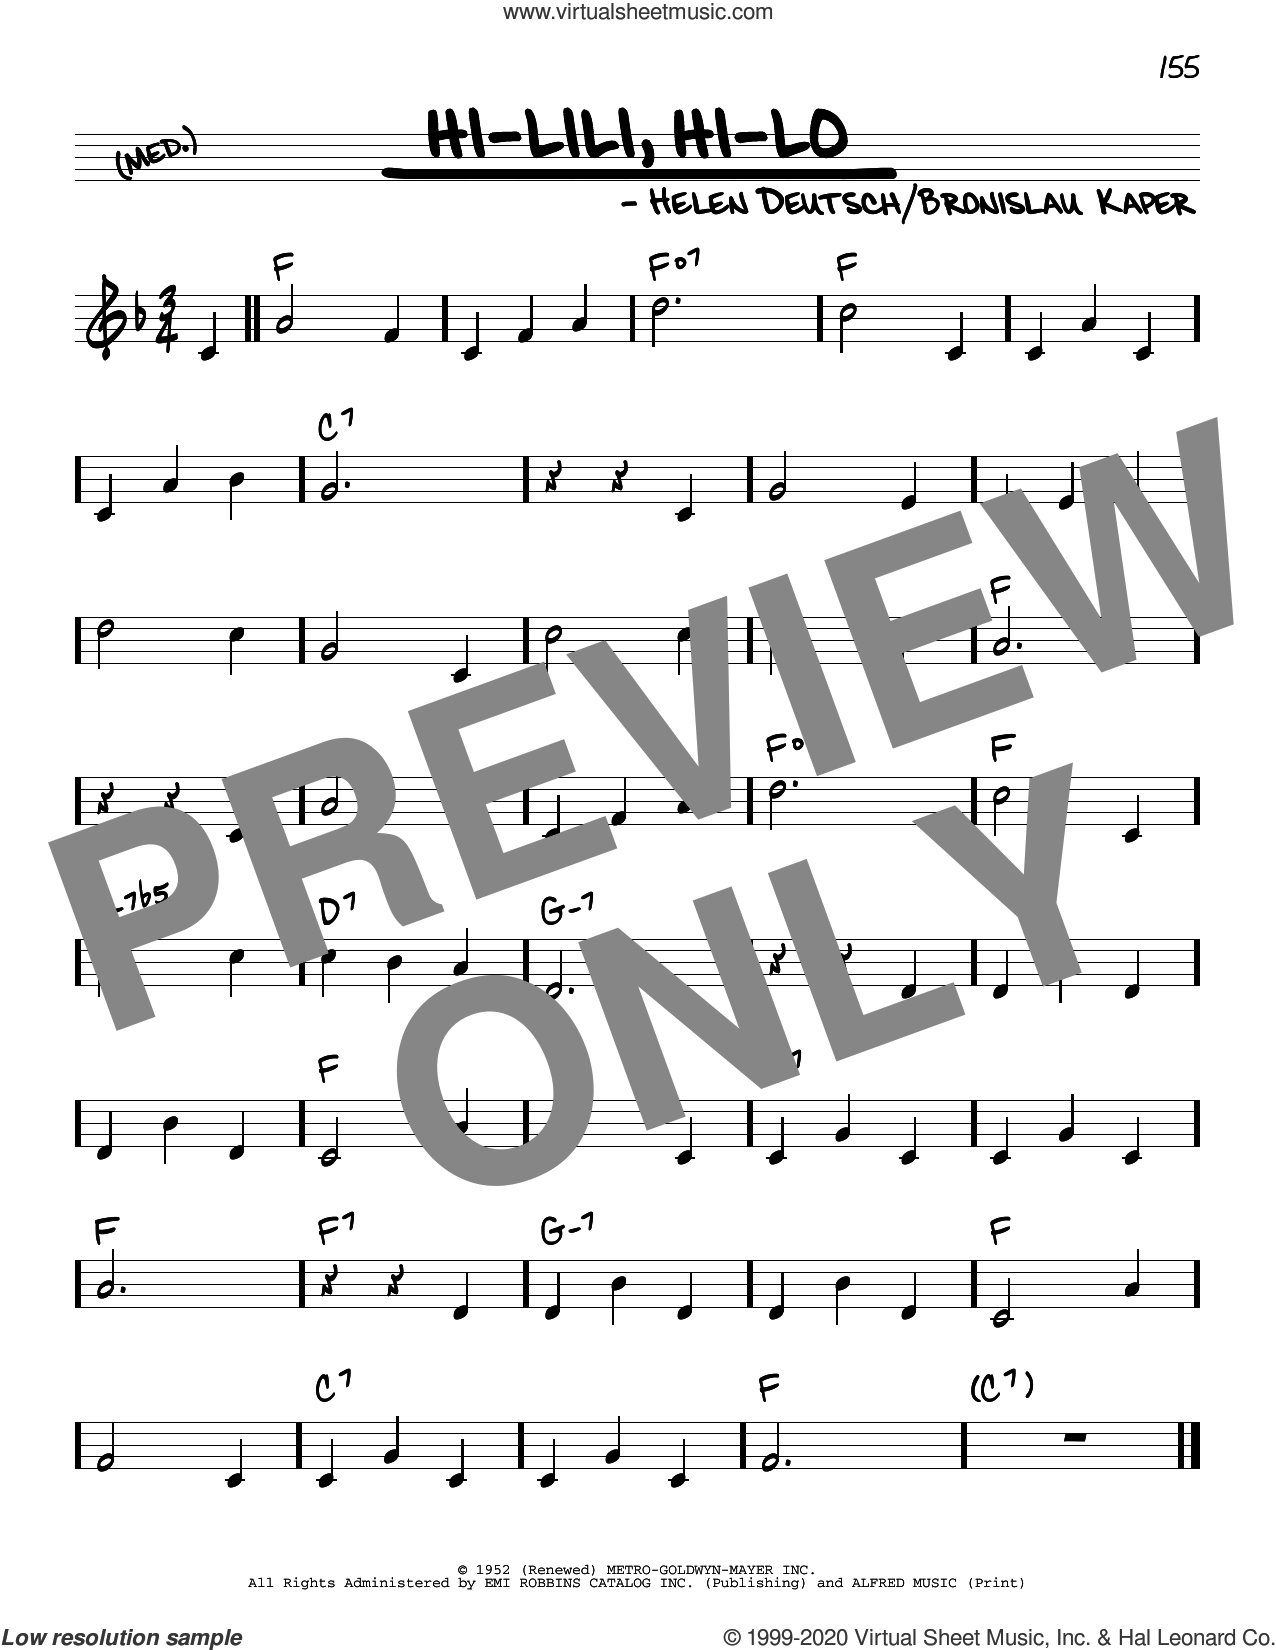 Hi-Lili, Hi-Lo sheet music for voice and other instruments (real book) by Bronislau Kaper and Helen Deutsch, intermediate skill level